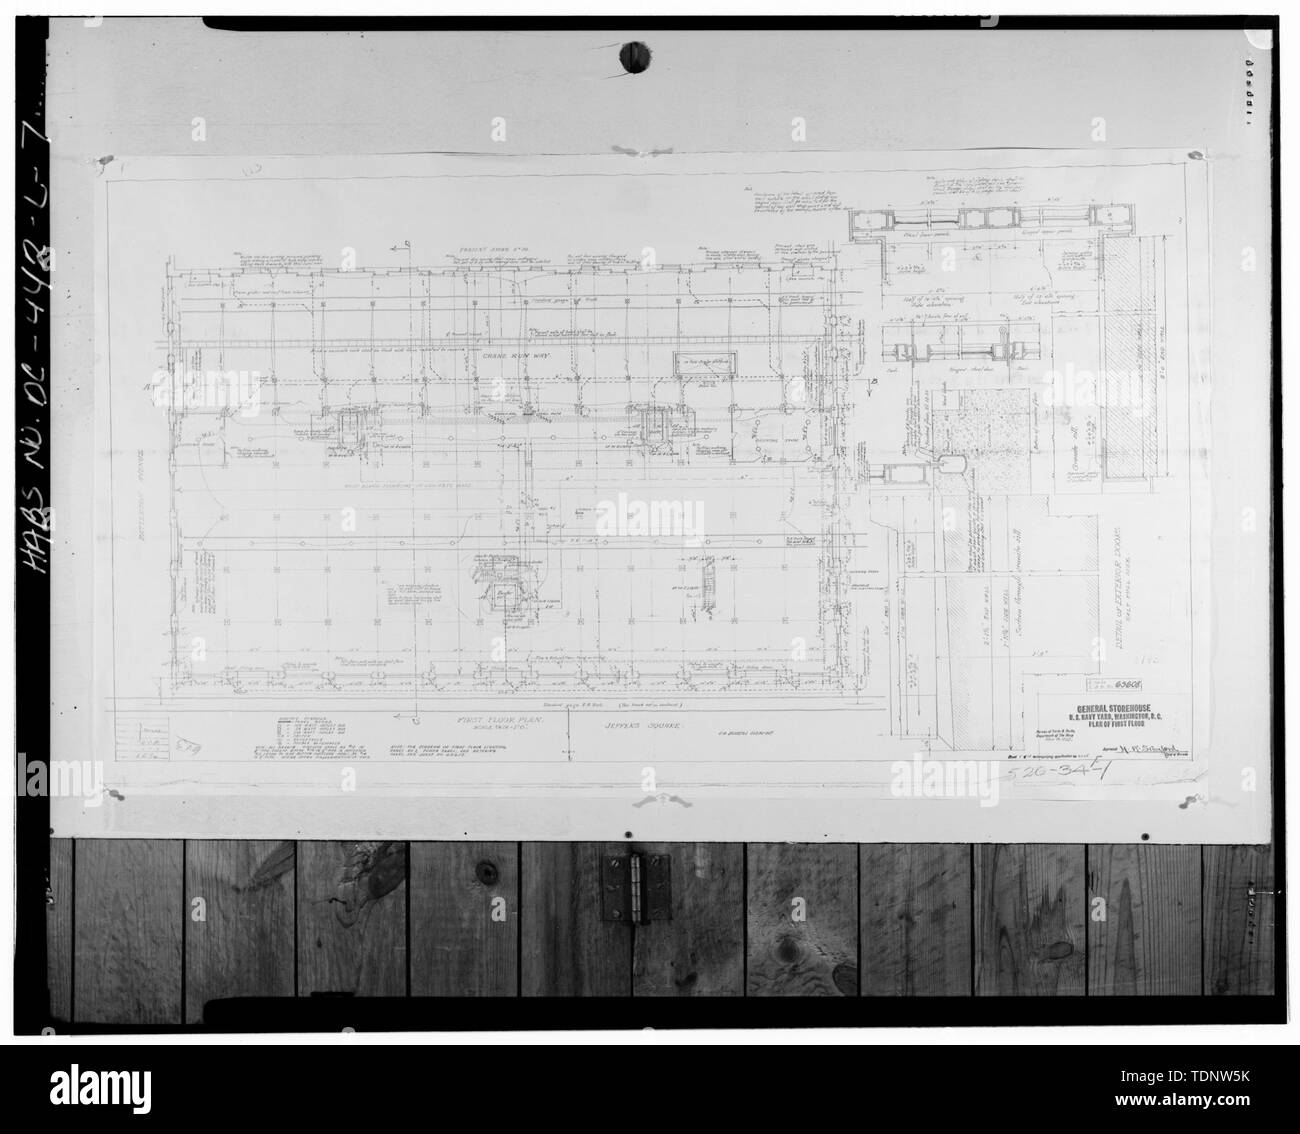 Photocopy of First Floor Plan, dated 3 November 1914. Original drawing located at Public Works Center, Drawings and Map Vault, Building 166, Washington Navy Yard, Washington, D.C. - Navy Yard, Building No. 143, Between Isaac Hull and Patterson Avenues, Washington, District of Columbia, DC - Stock Image